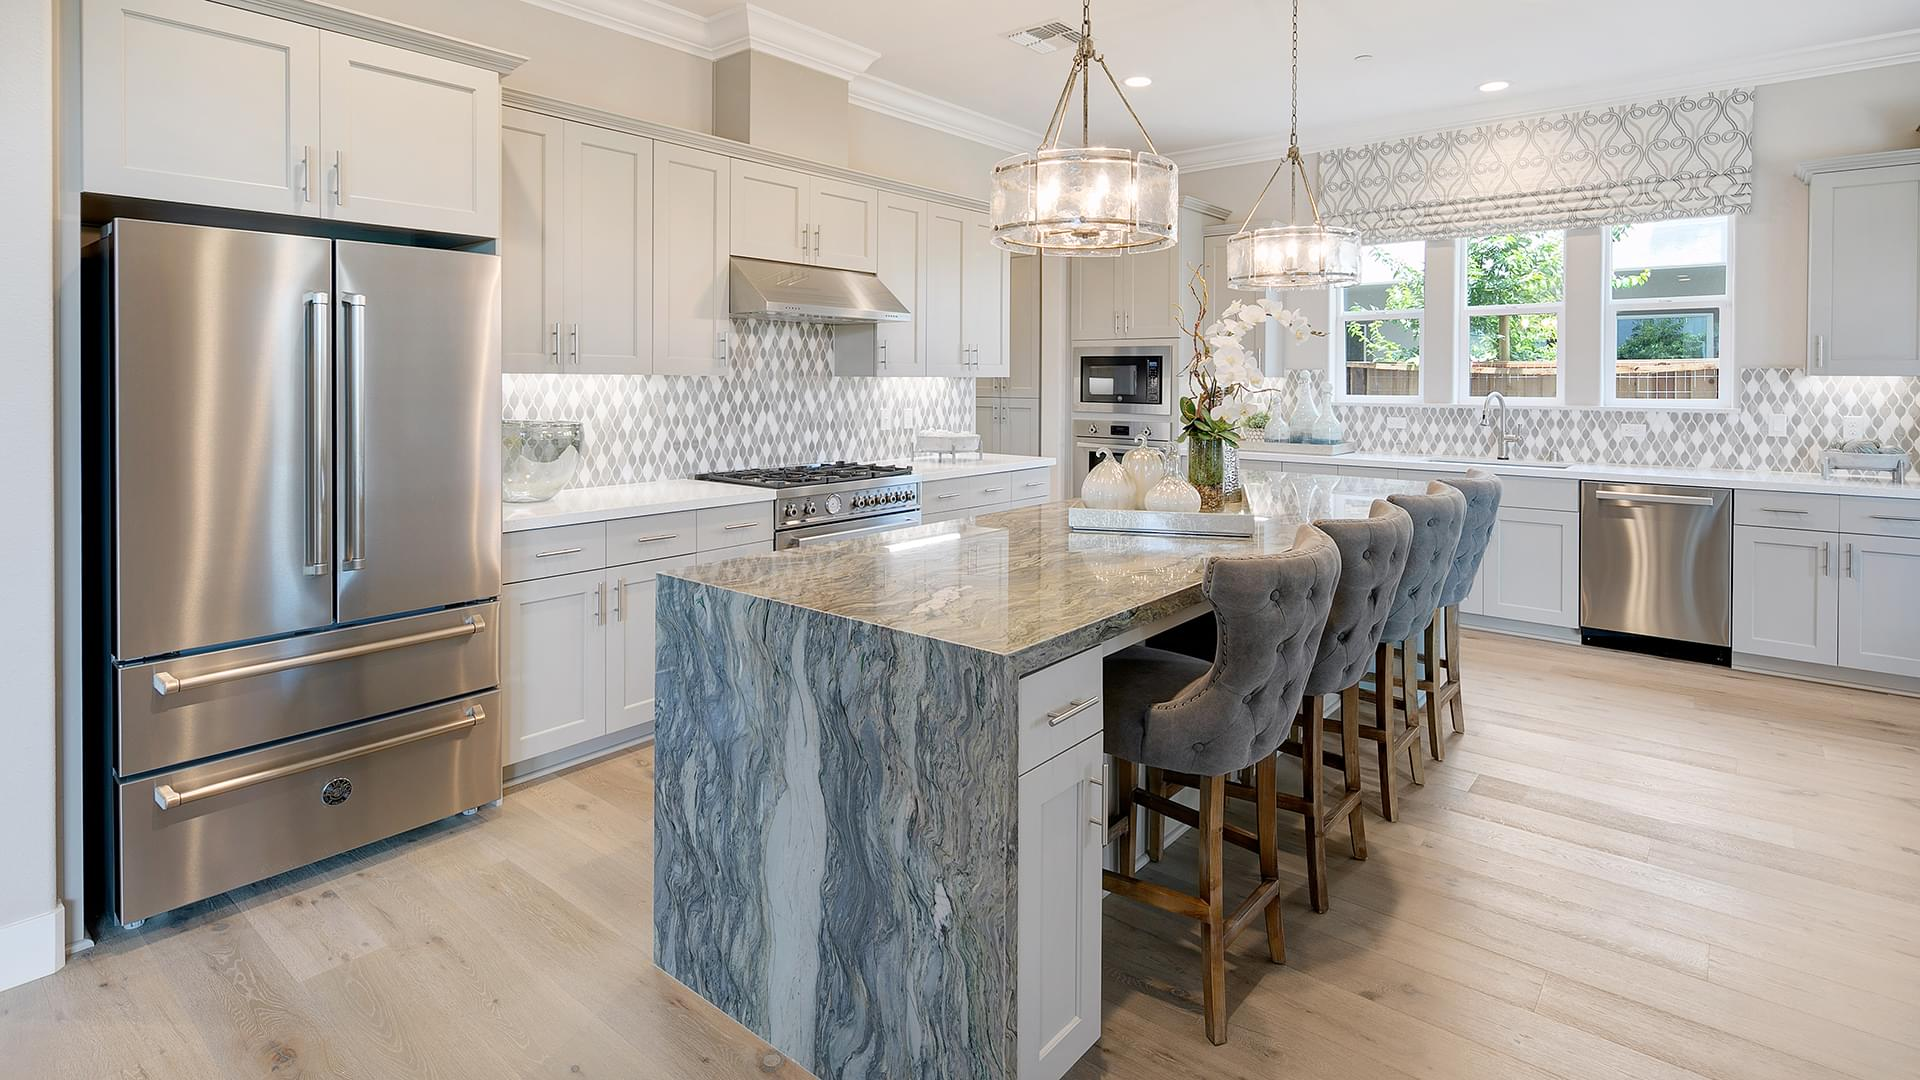 2680 Tranquility Street in San Jose, CA by DeNova Homes